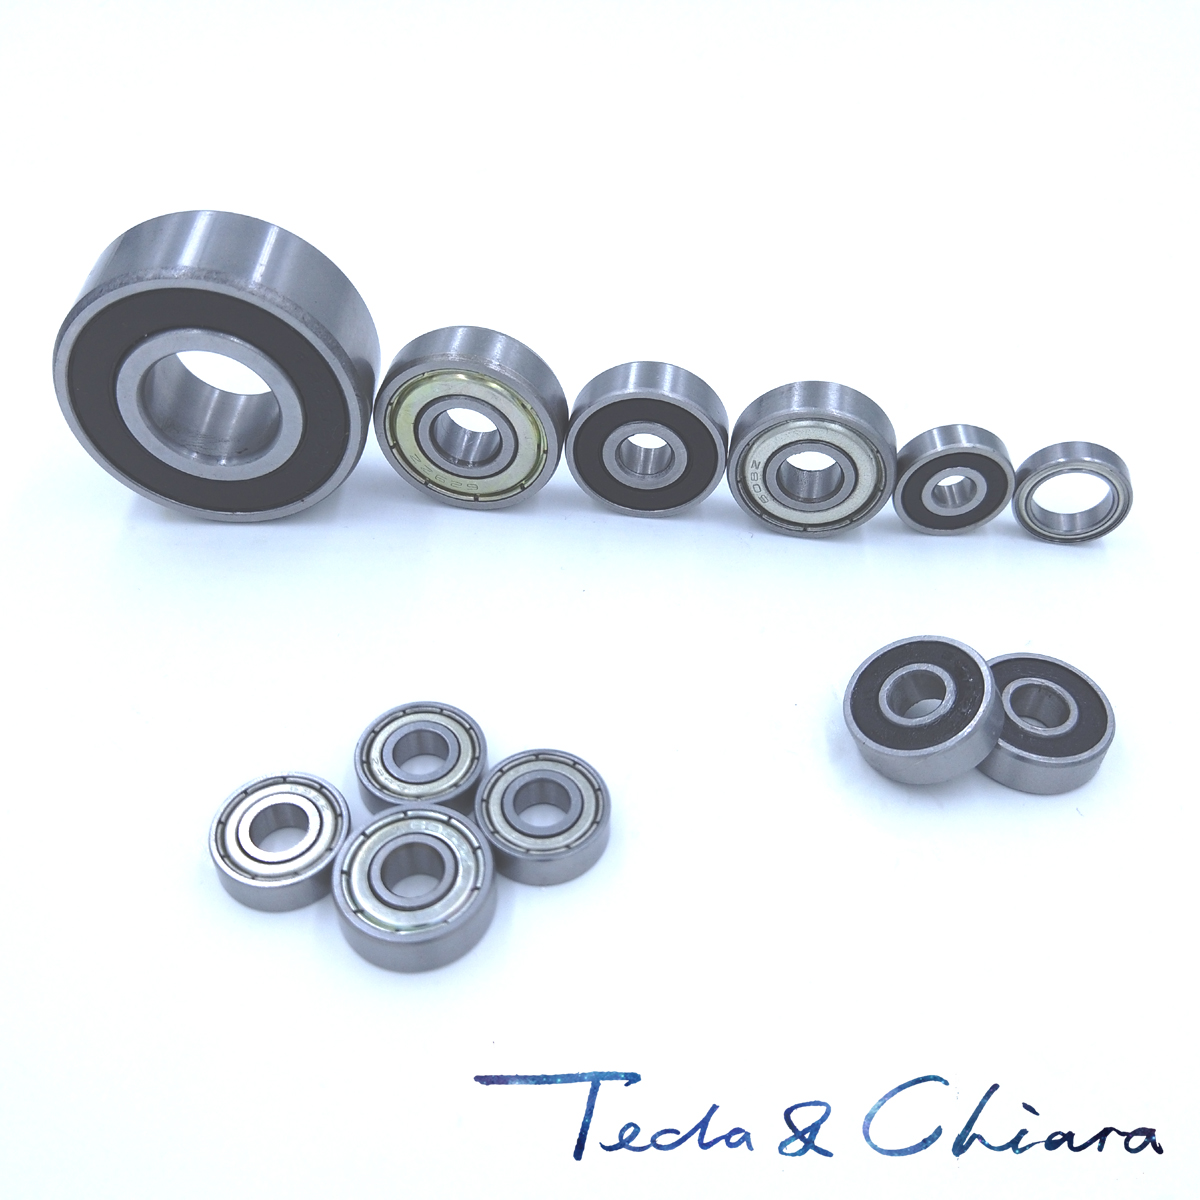 625 <font><b>625ZZ</b></font> 625RS 625-2Z 625Z 625-2RS ZZ RS RZ 2RZ Deep Groove Ball Bearings 5 x 16 x 5mm High Quality image